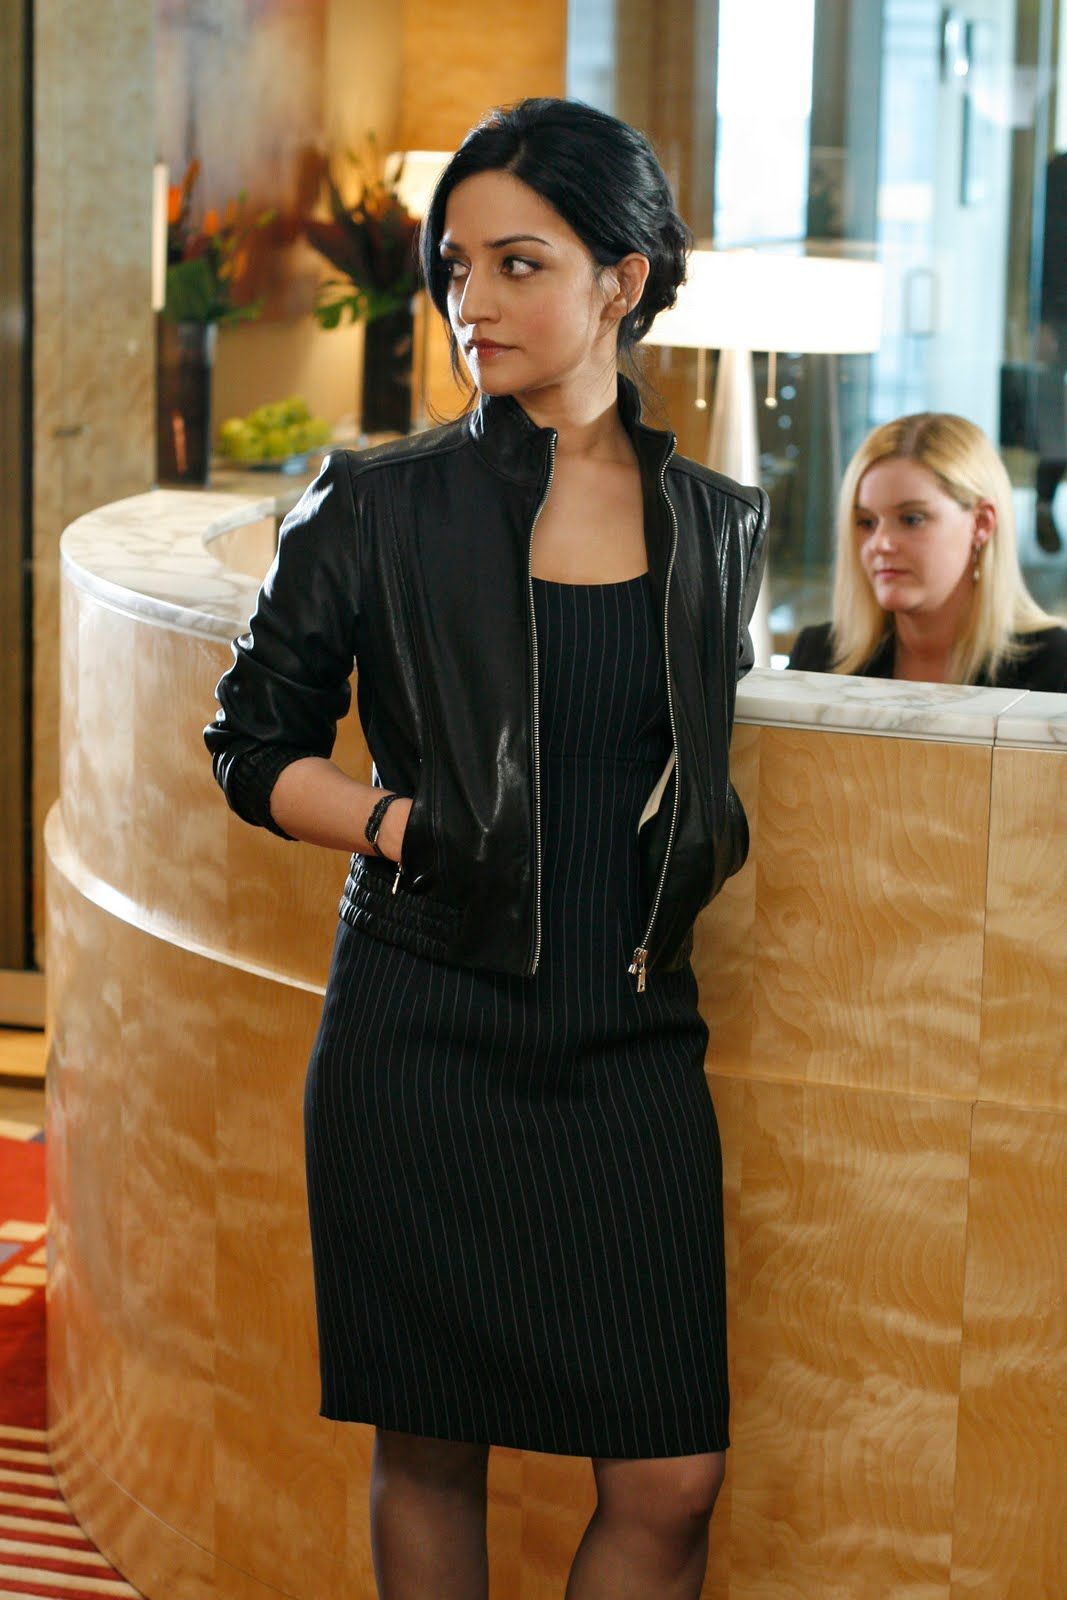 Kalinda Sharma In A Sheath Dress And Leather Jacket Thegoodwife Bad Coat Dan Long Blazer Kate Ass Office Attire The Good Wifes Private Investigator